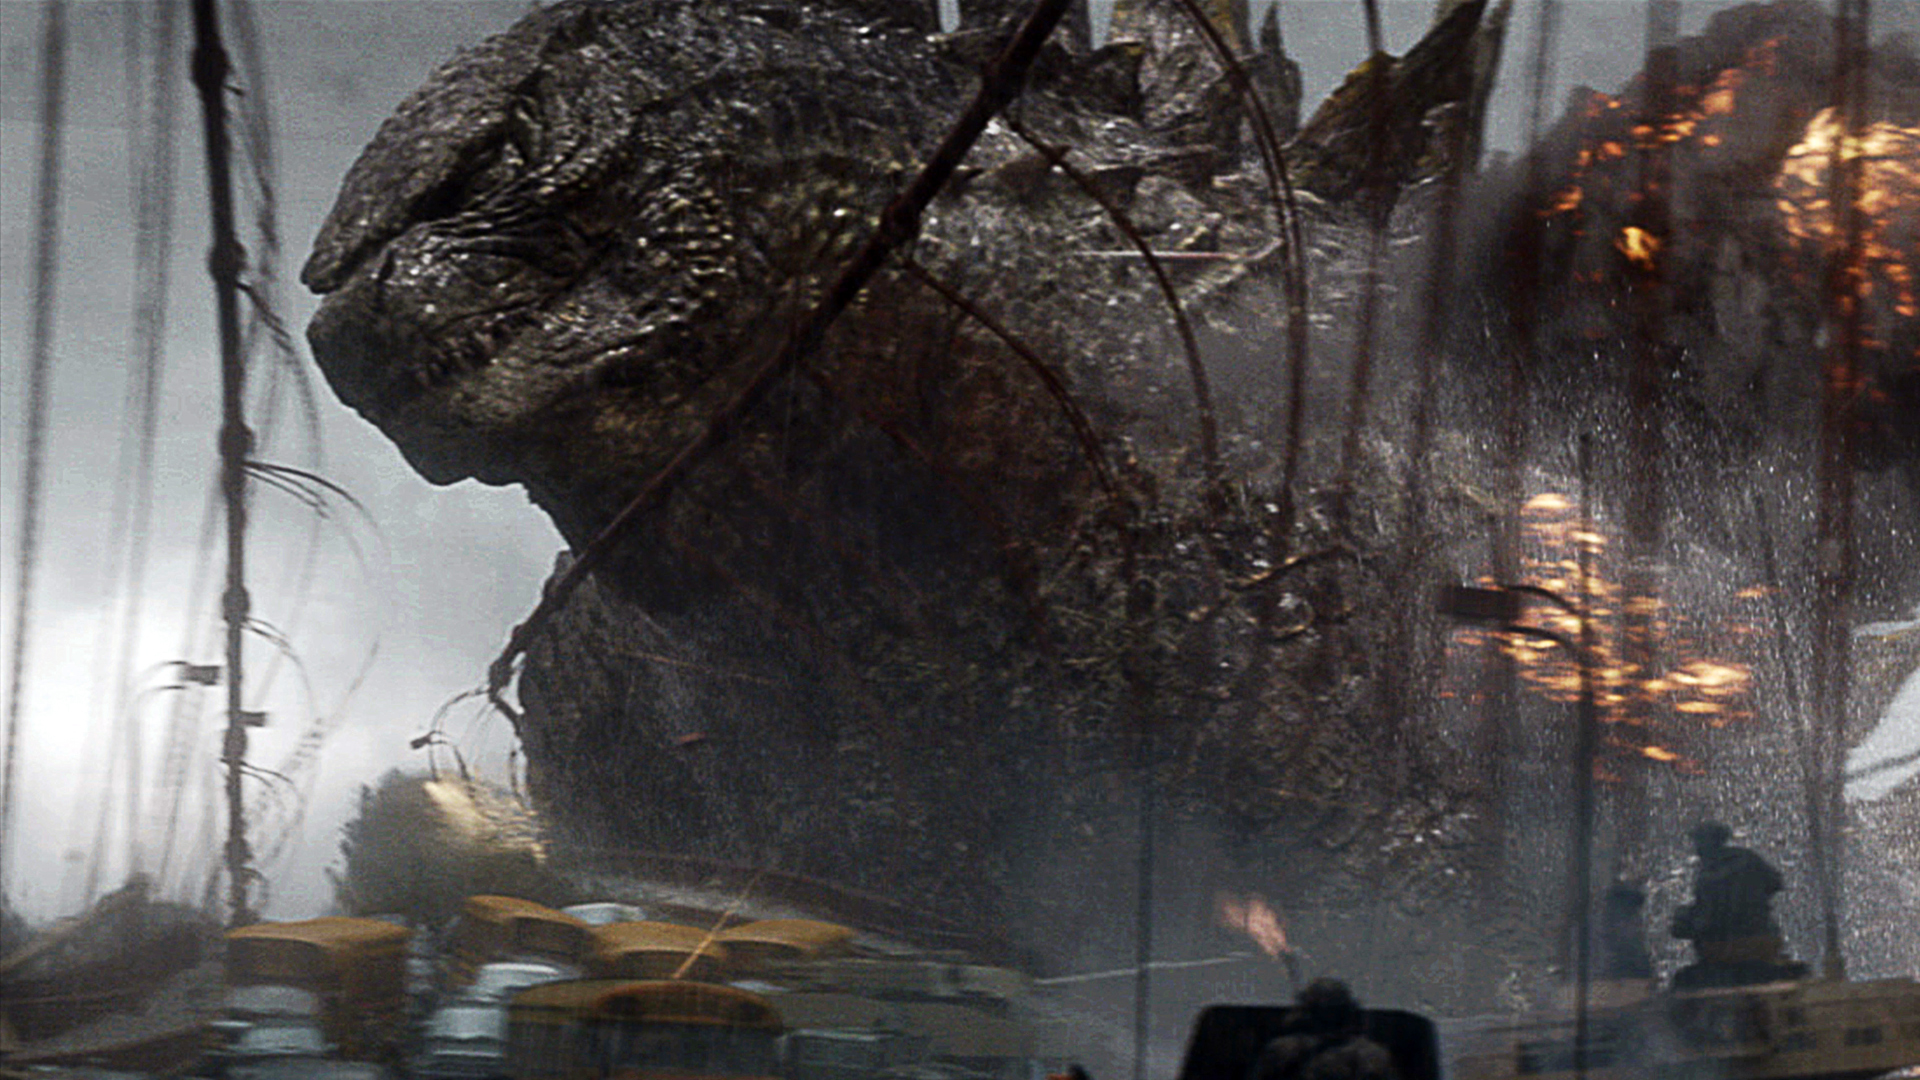 Godzilla Image 2014 02 HD Wallpaper 1920x1080